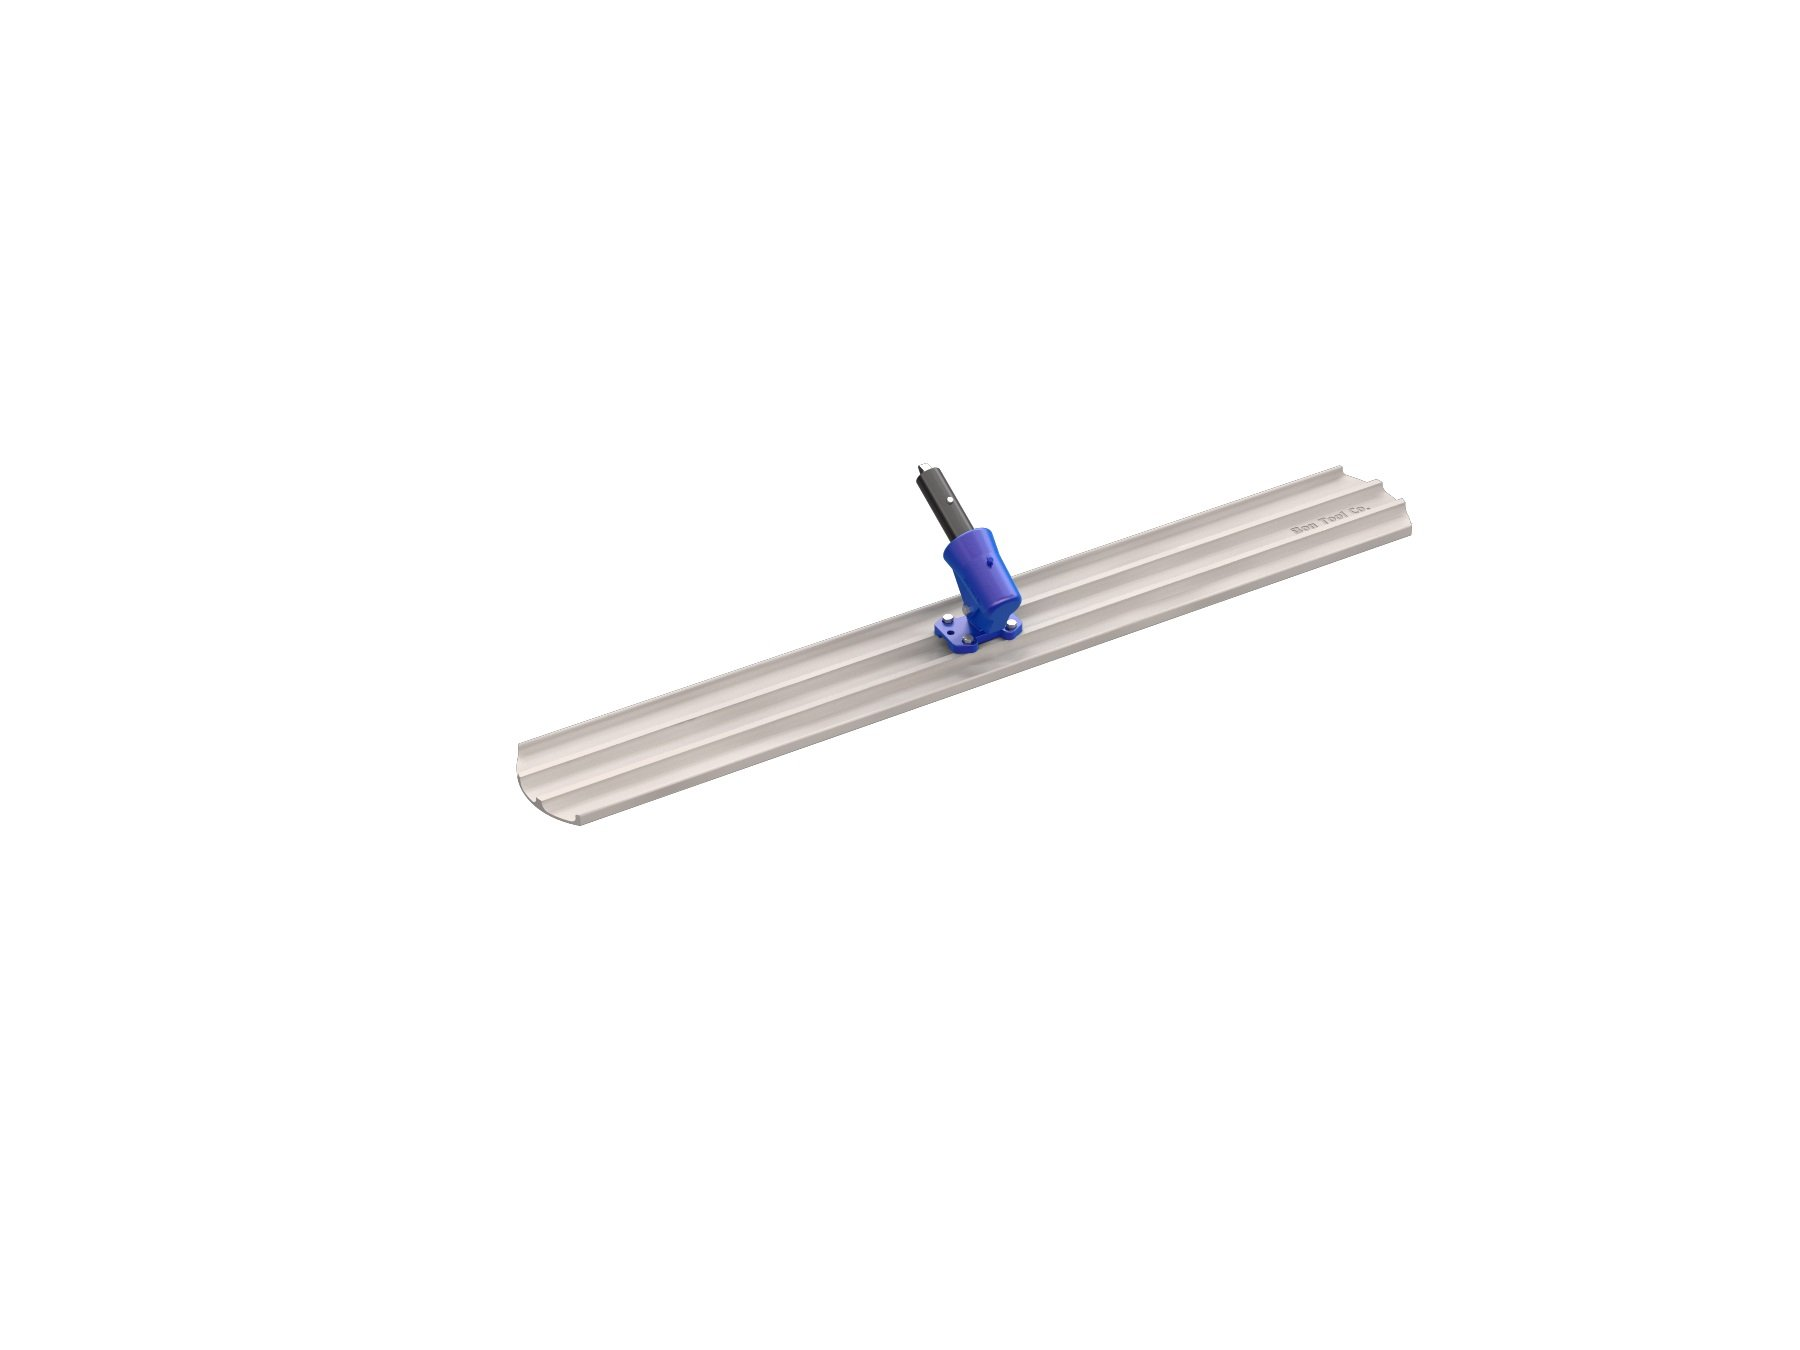 Bon 82-425 60-Inch by 8-Inch Round End Magnesium Bull Float with Wormgear Bracket by bon